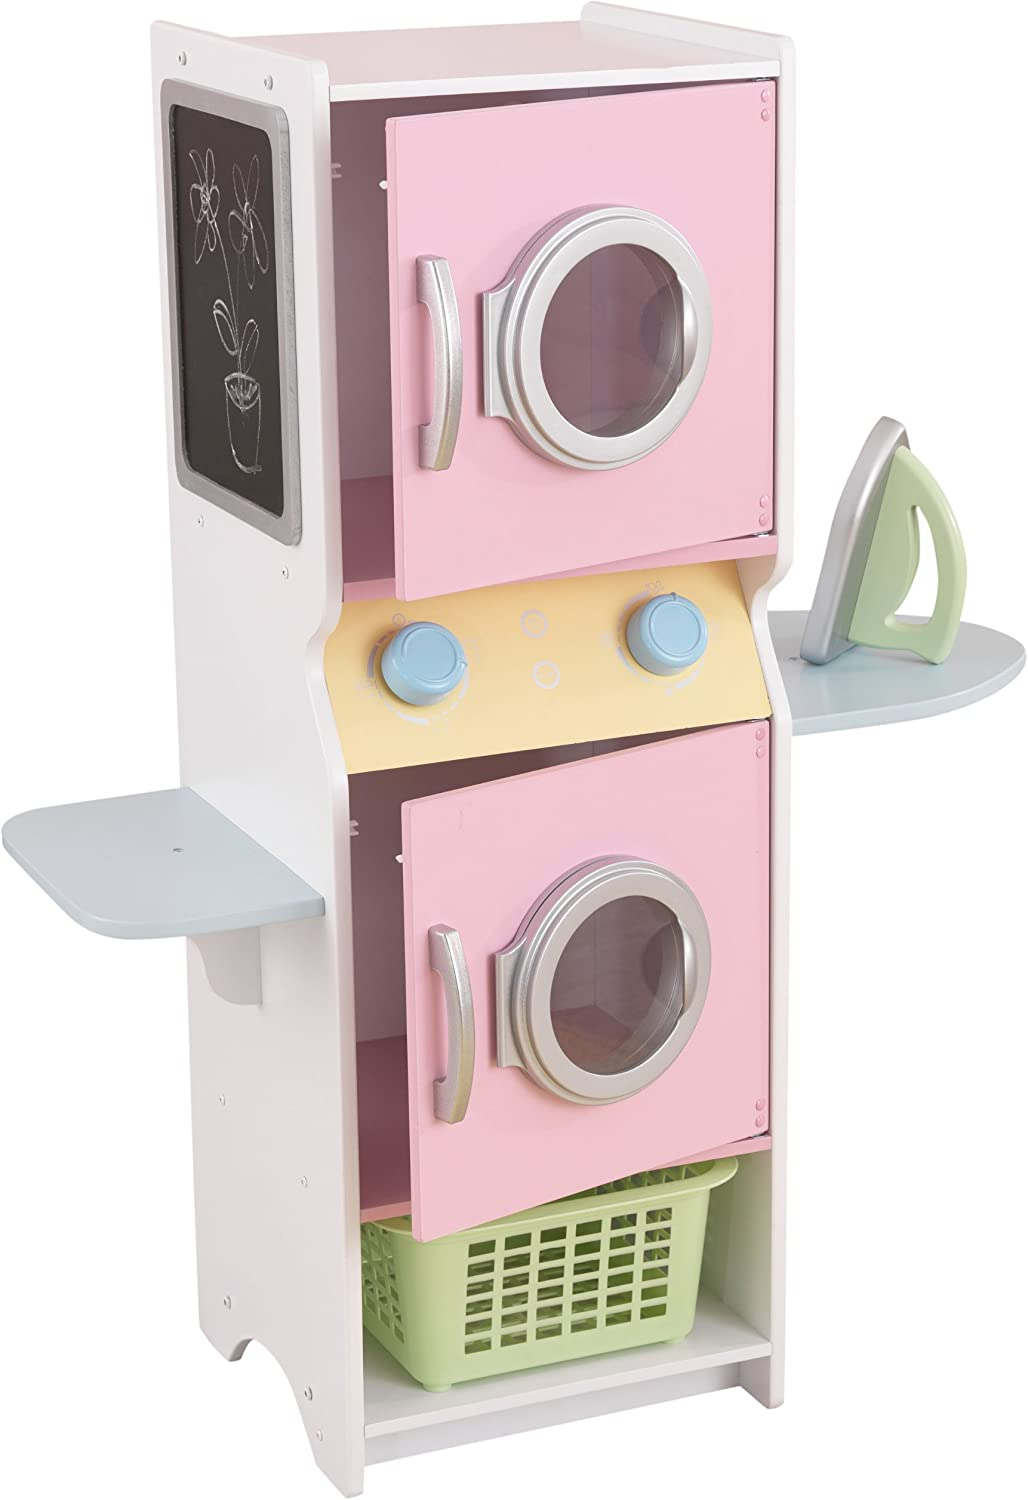 KidKraft Laundry Playset Children's Pretend Wooden Stacking Washer and Dryer Toy